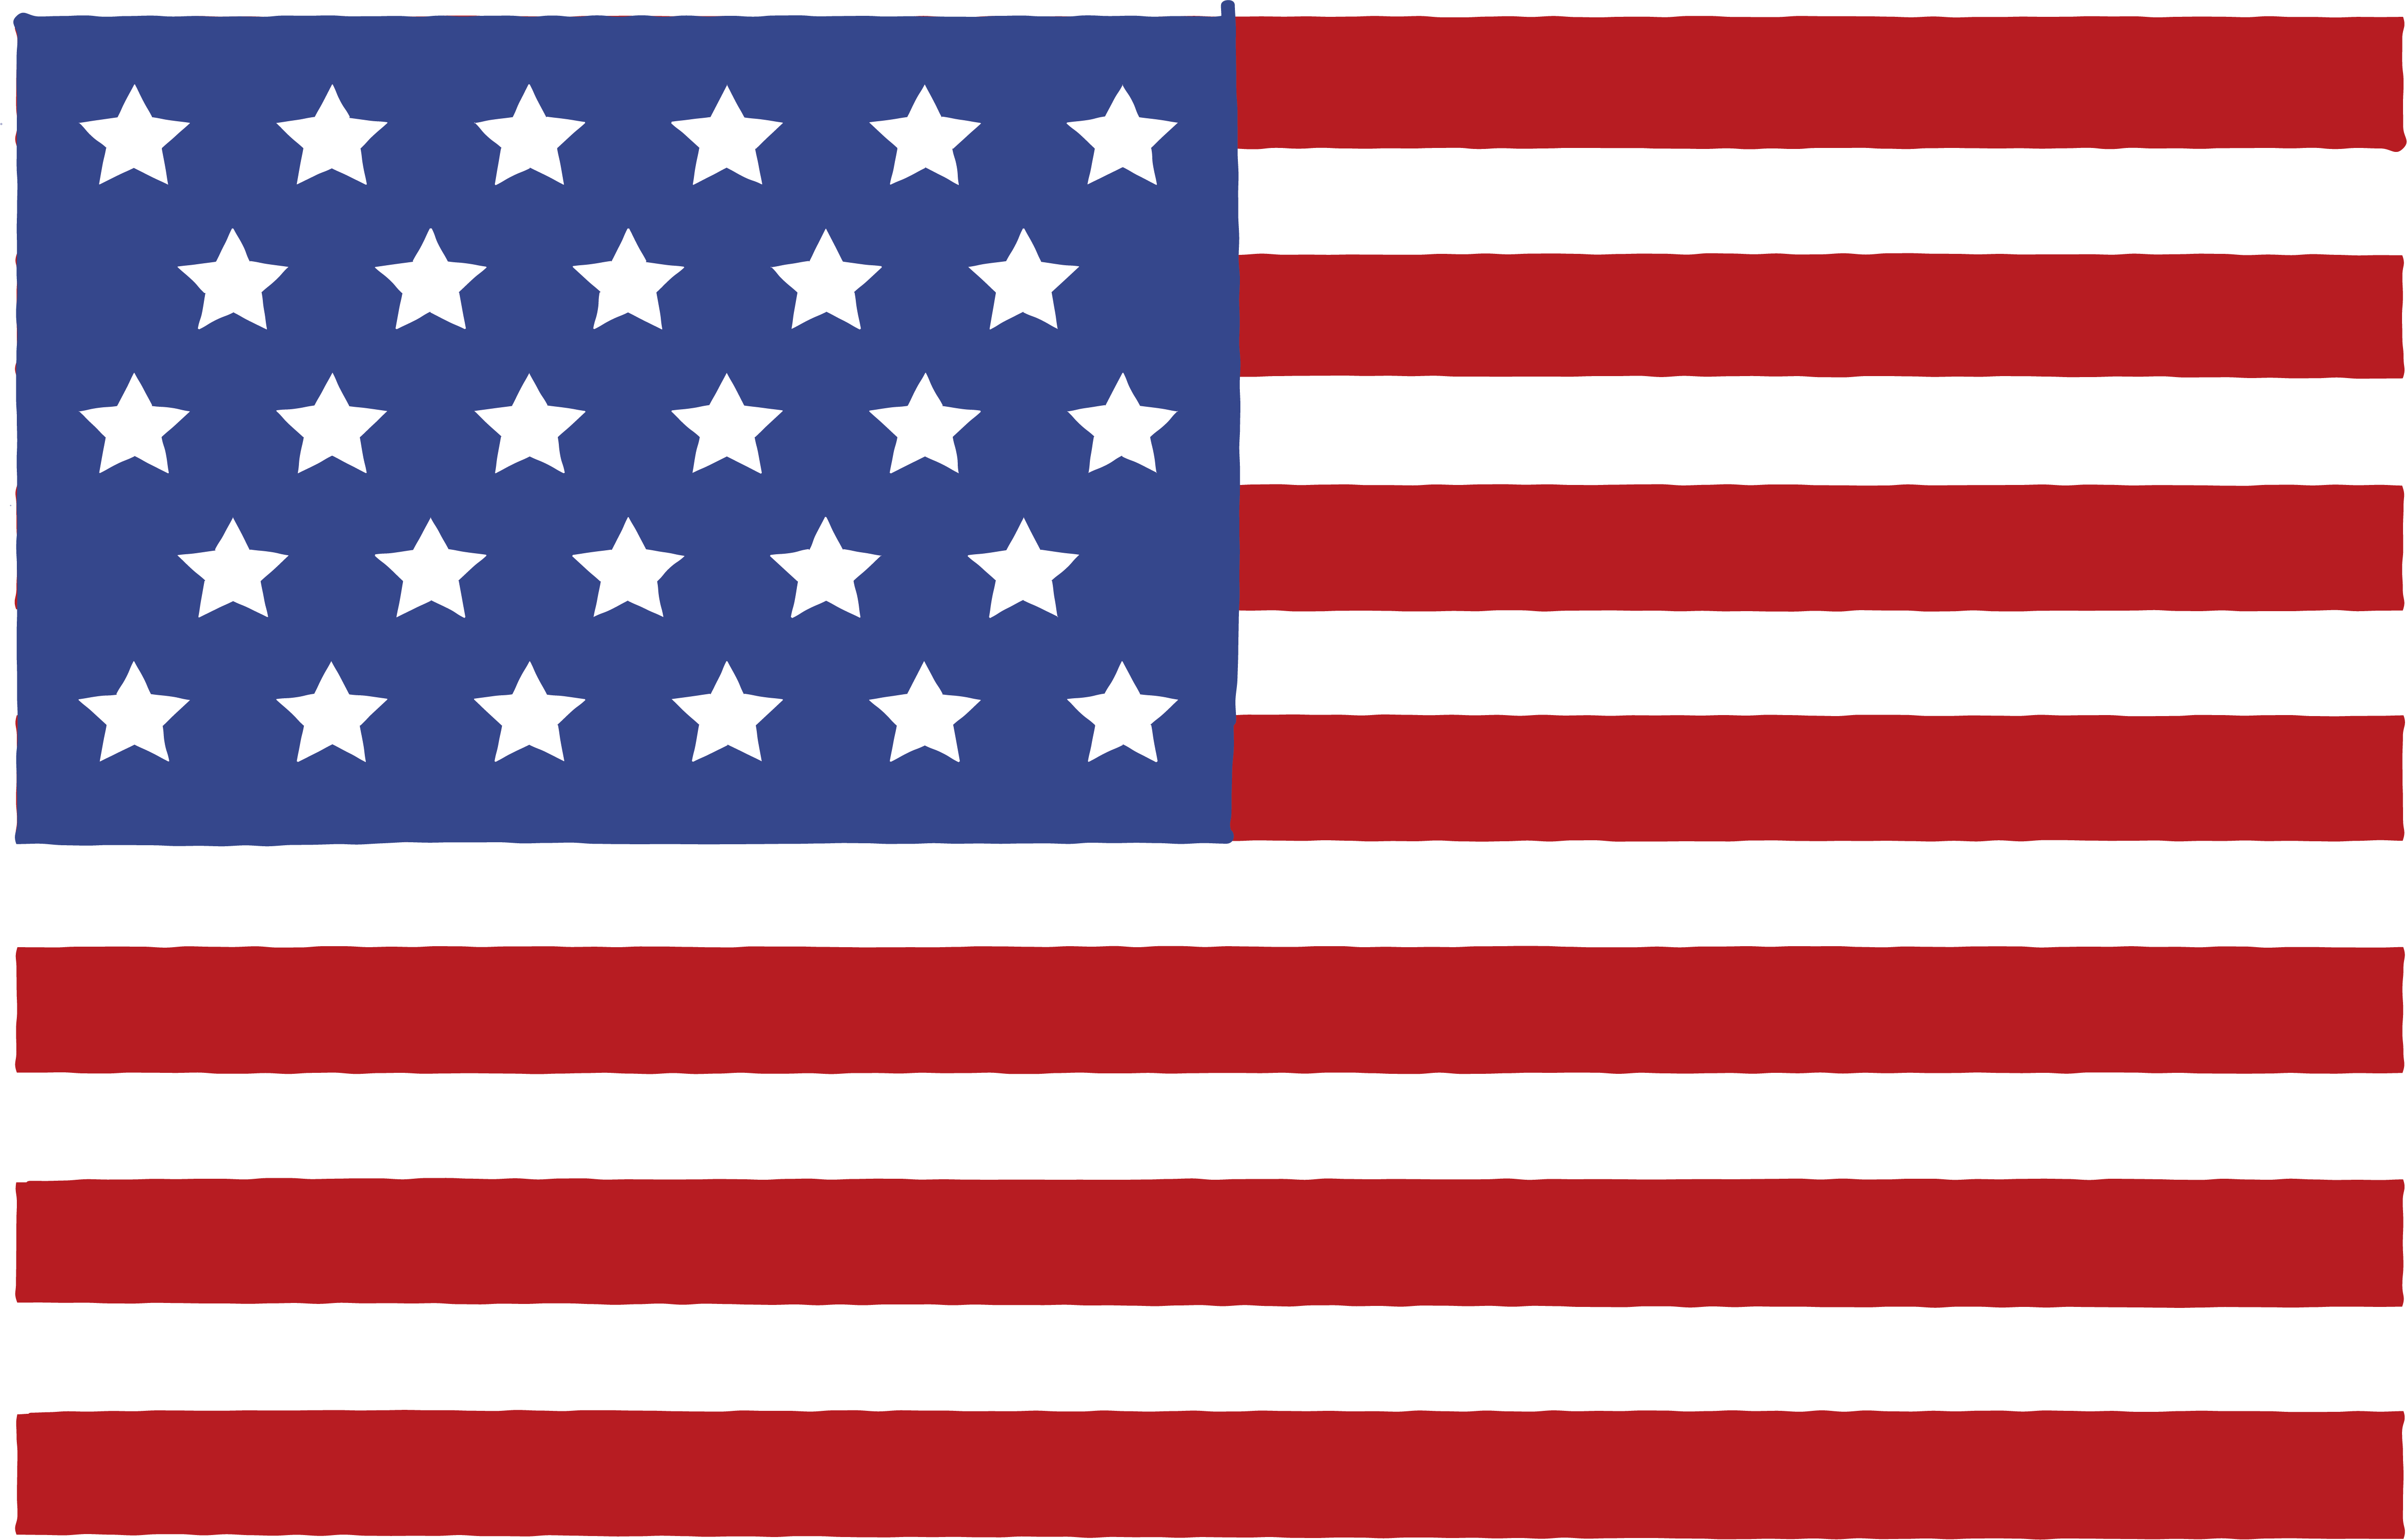 United states clipart free picture transparent stock Flag of the United States Decal Clip art - Flag of the United States ... picture transparent stock